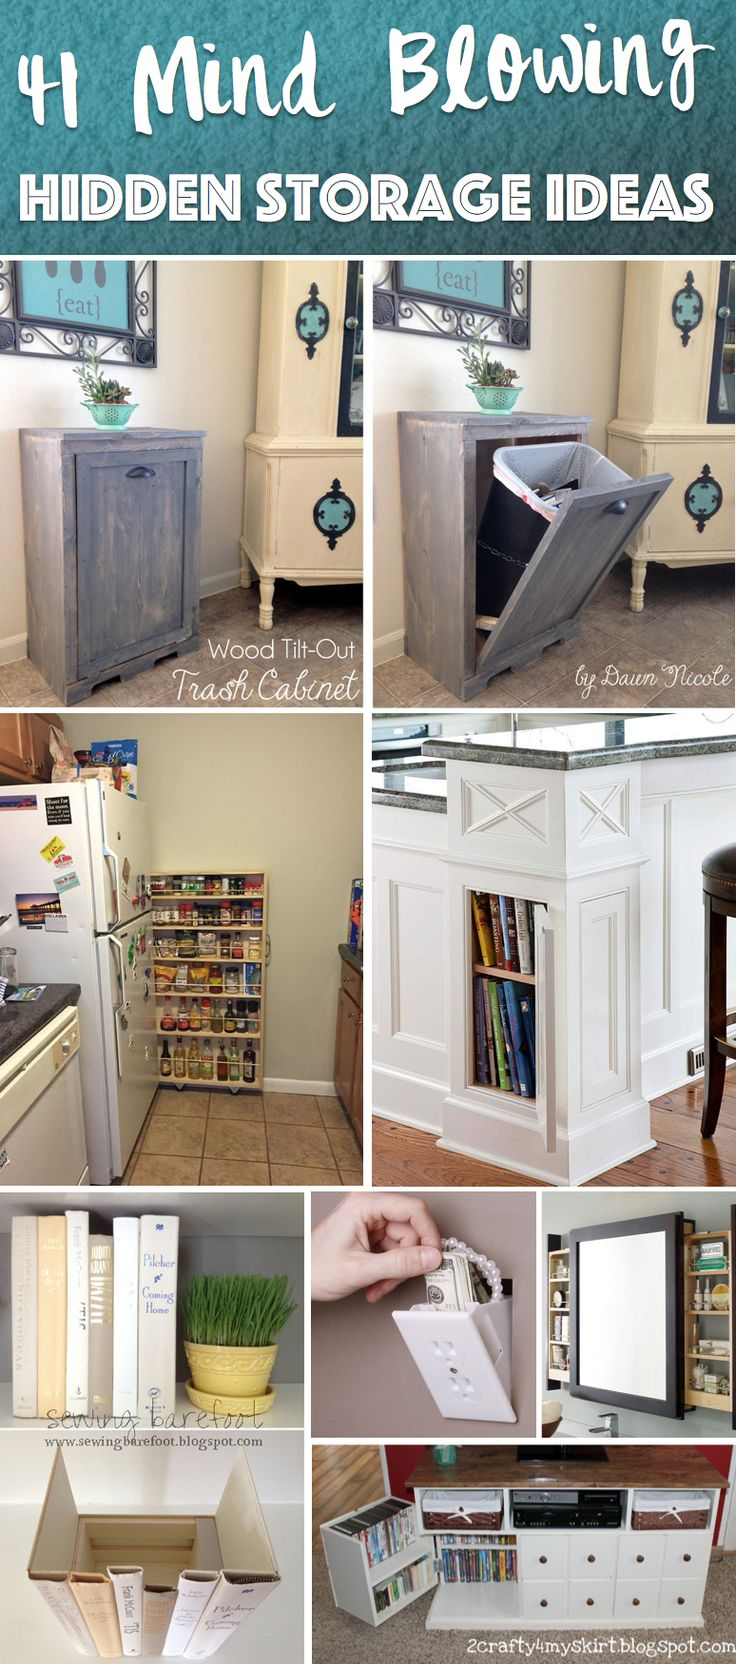 Mind Blowing Hidden Storage Ideas Making A Clever Use Of Your Household Space